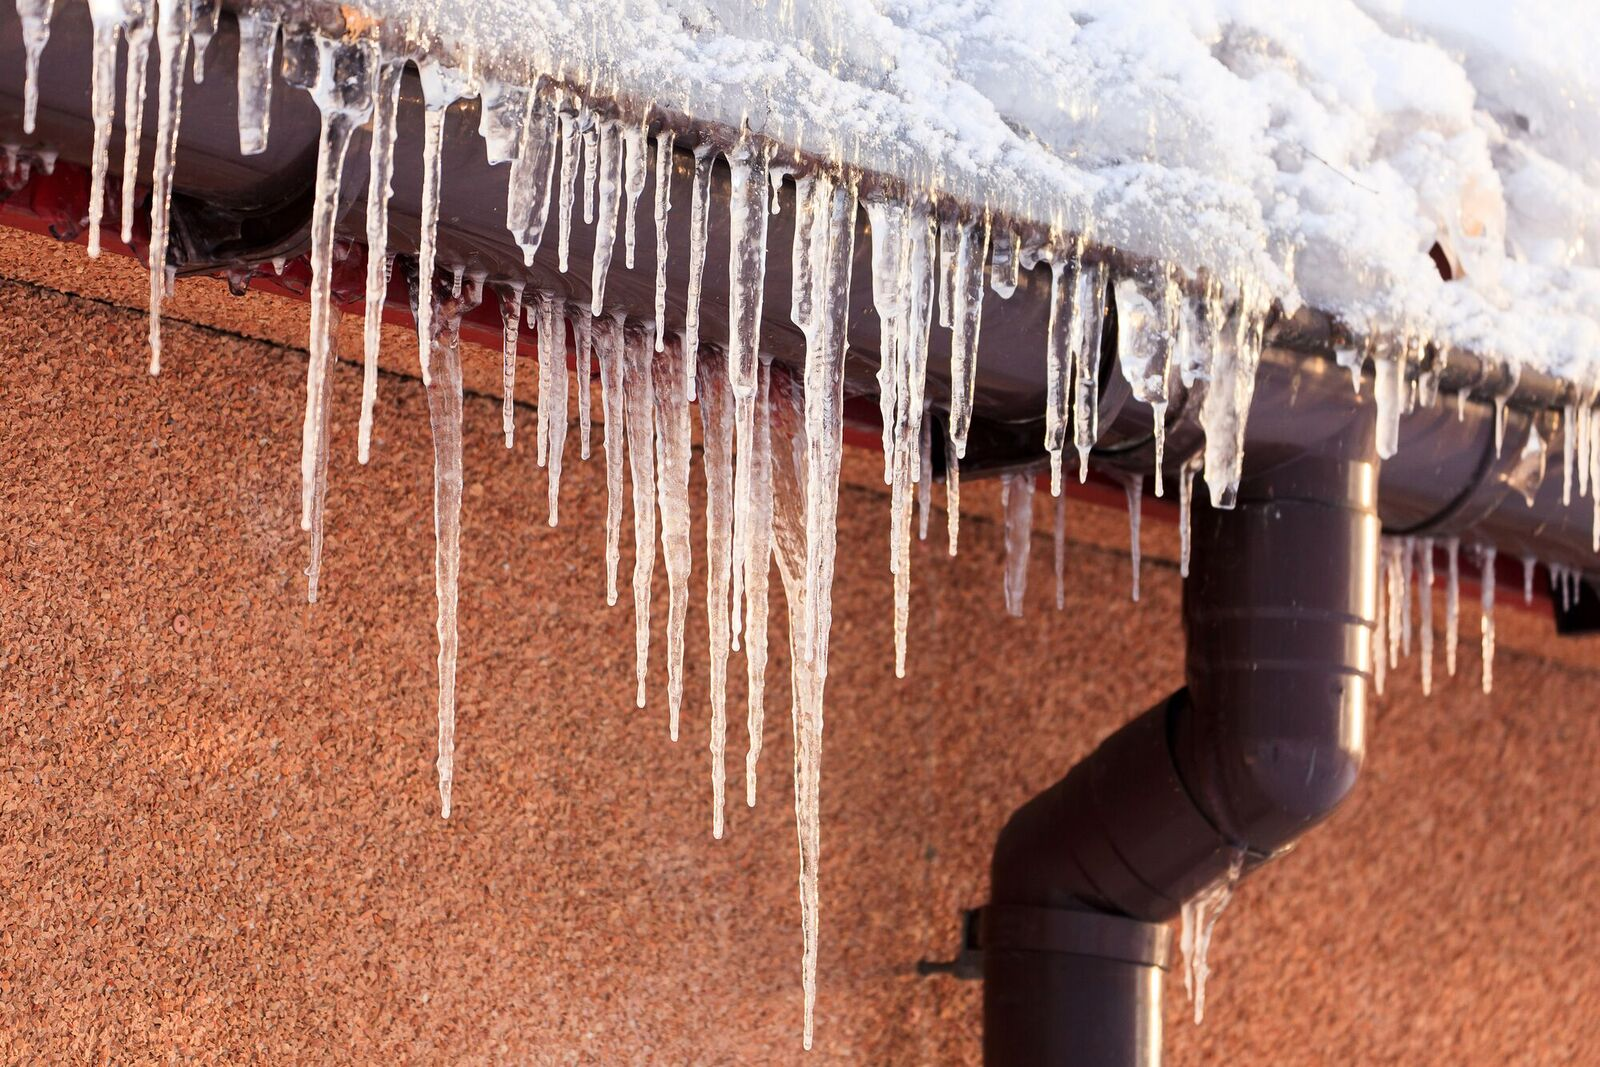 WATERGATE ROOFING: Thawing Out: Spring is the Perfect Time for a Roof Clean-Up